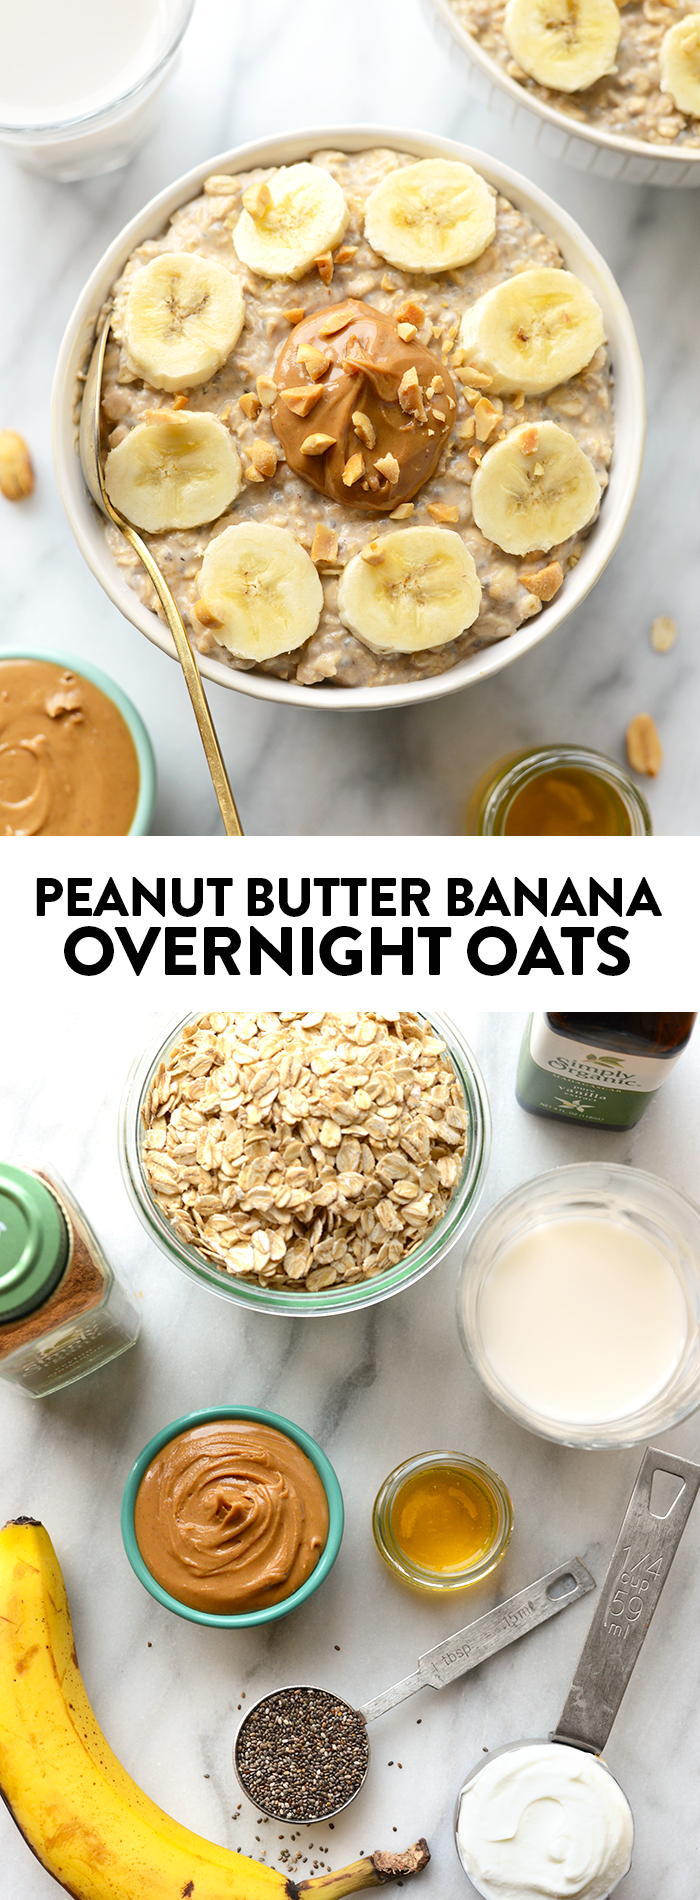 peanut butter banana overnight oats rezept clean eating pinterest fr hst ck m sli und. Black Bedroom Furniture Sets. Home Design Ideas